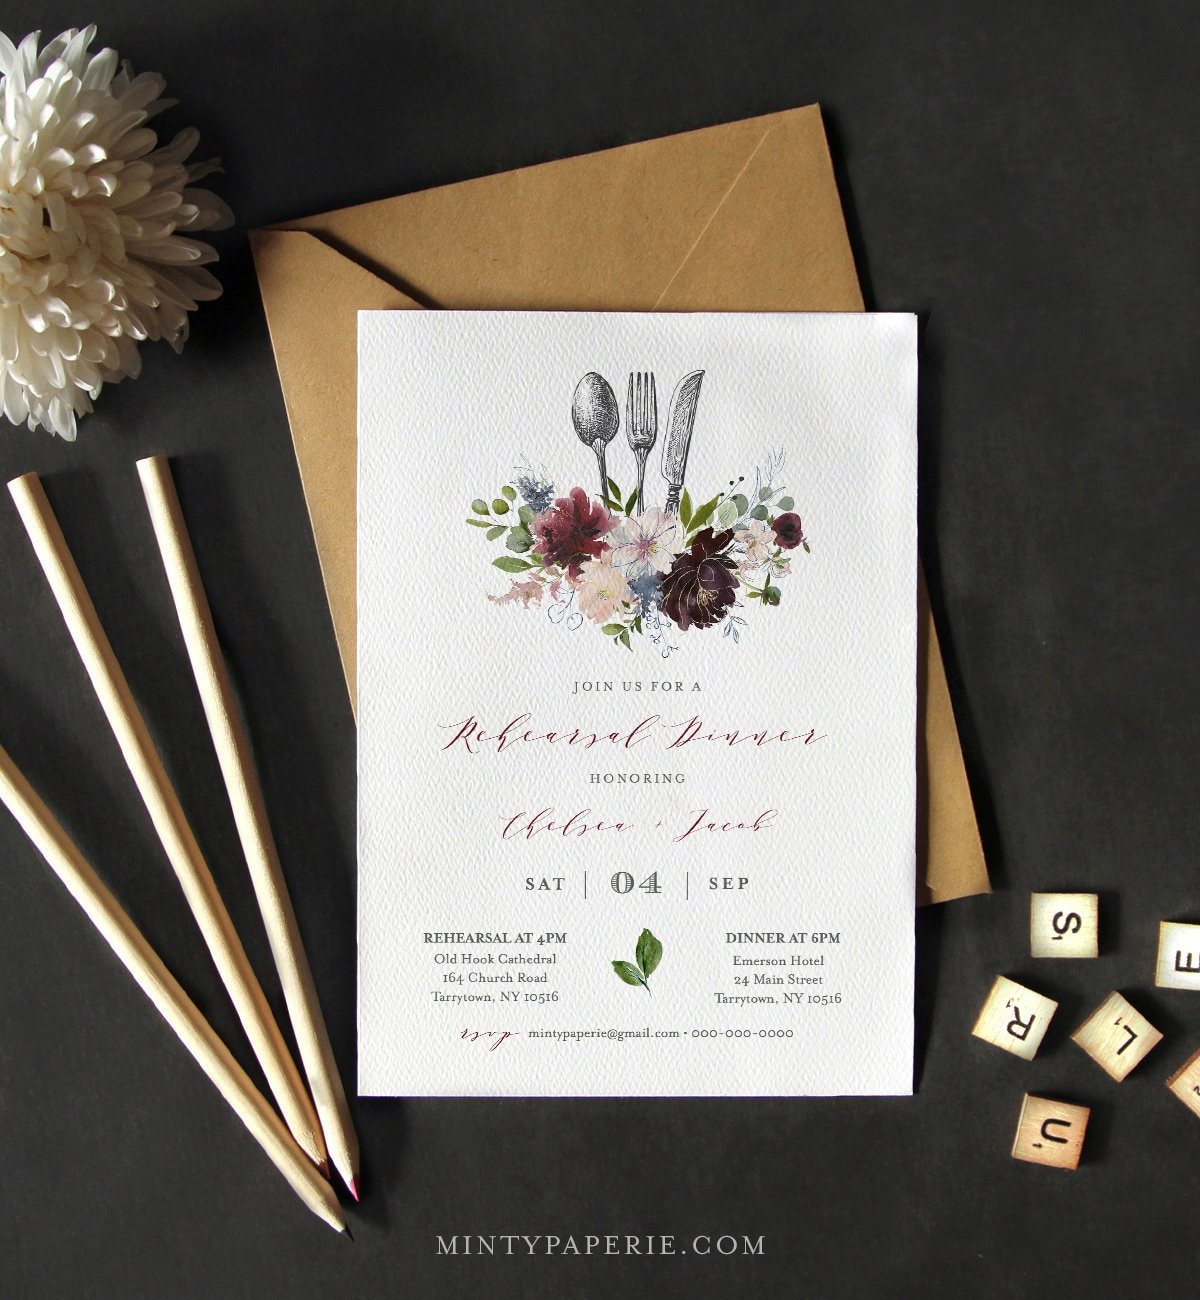 It's just a photo of Agile Printable Rehearsal Dinner Invitations